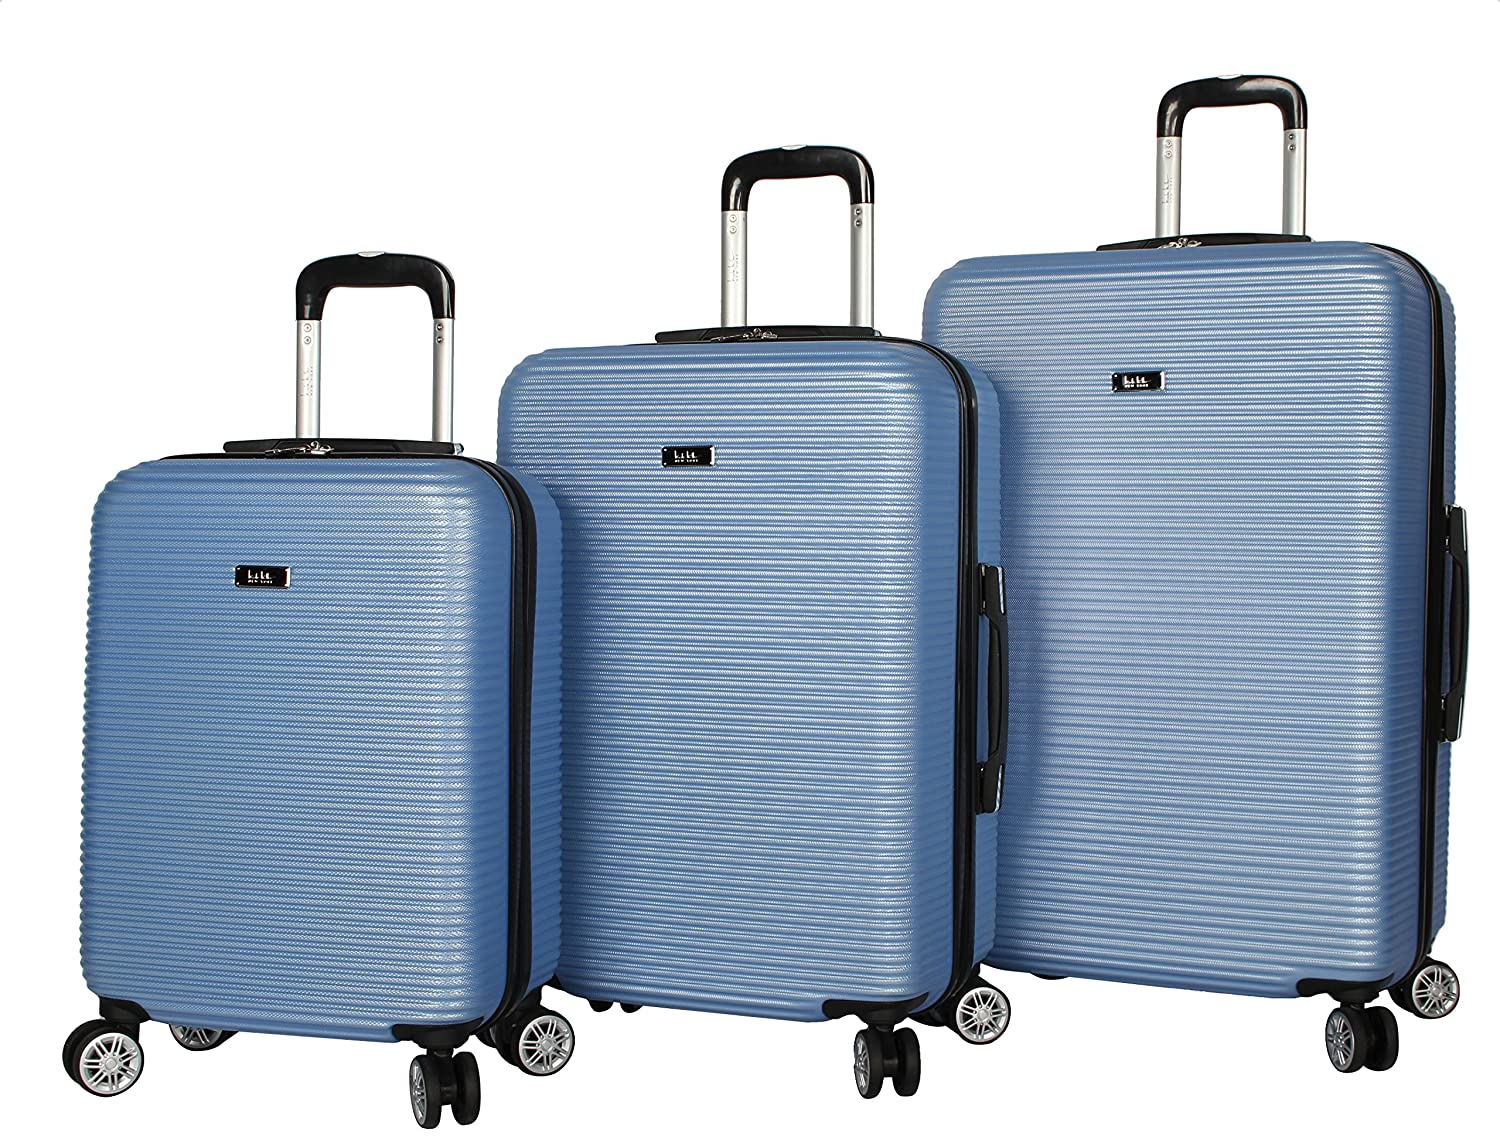 Nicole Miller Bernice 3-Piece Hardside Upright Luggage Spinner Set and 20 28 24